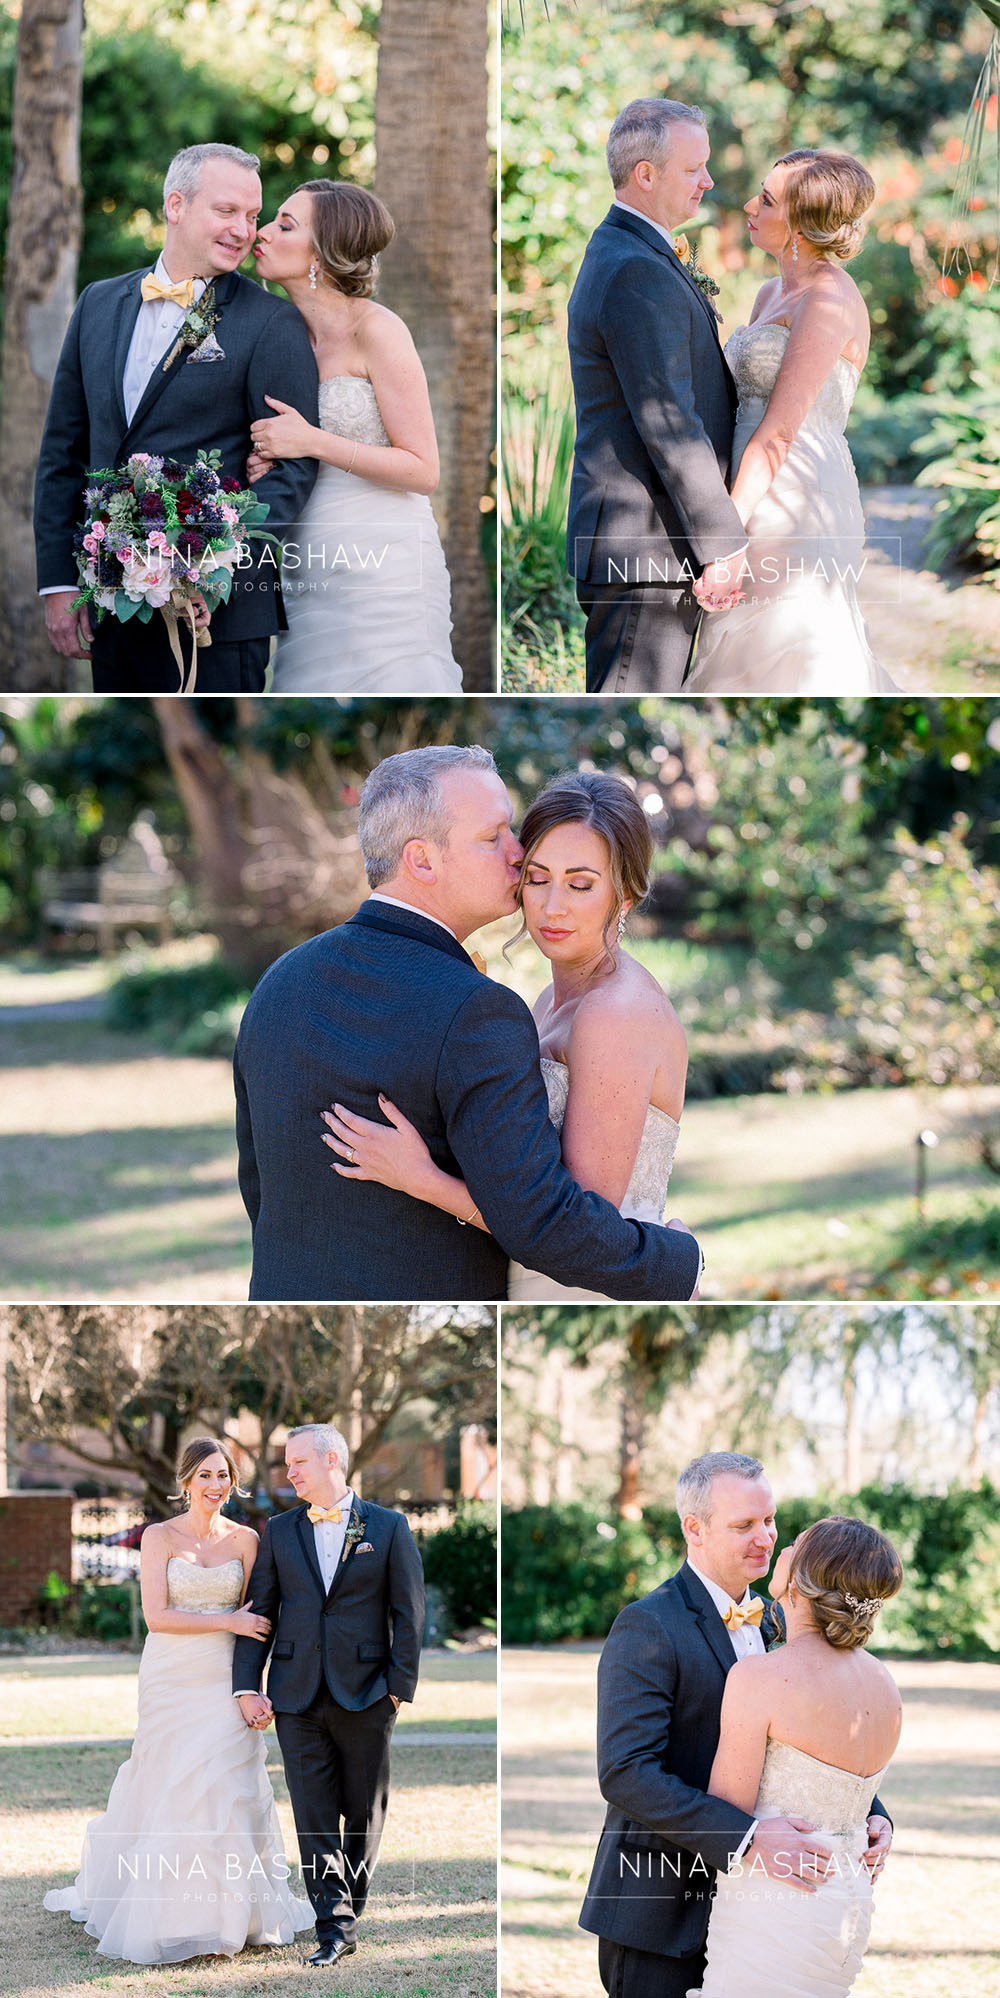 Charlotte wedding photographer Nina Bashaw | Wedding at Seibels House and Garden in Columbia, SC | Columbia wedding photographers